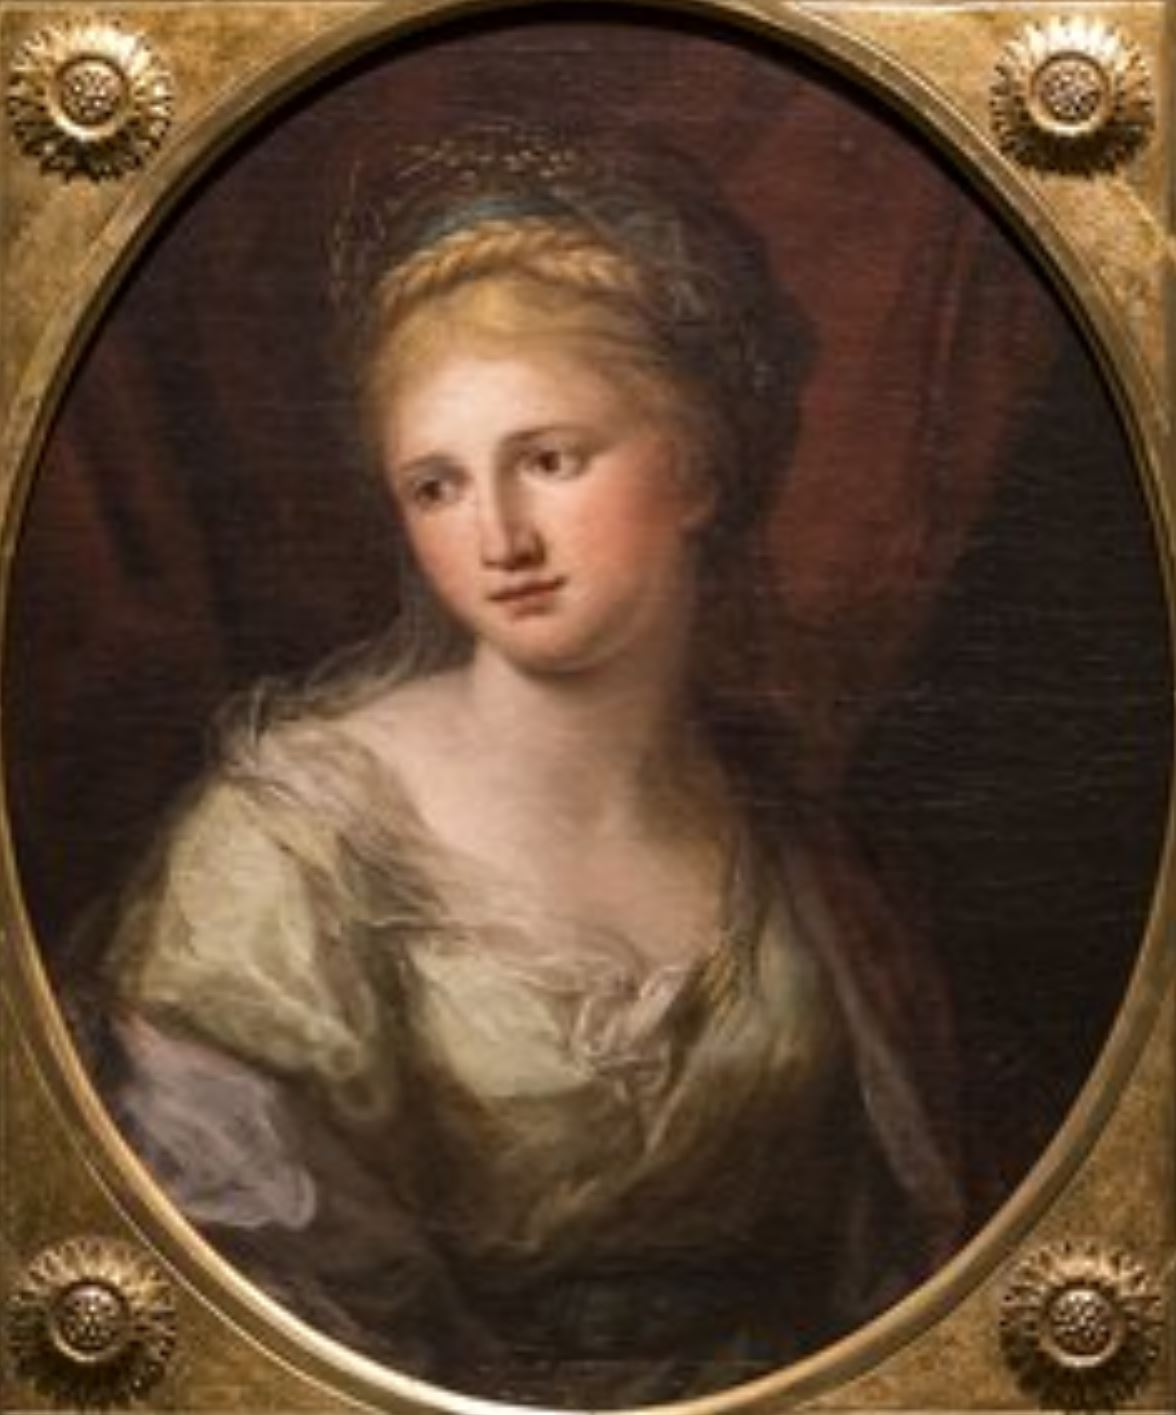 angelica kauffman 1785 Ceres coll priv